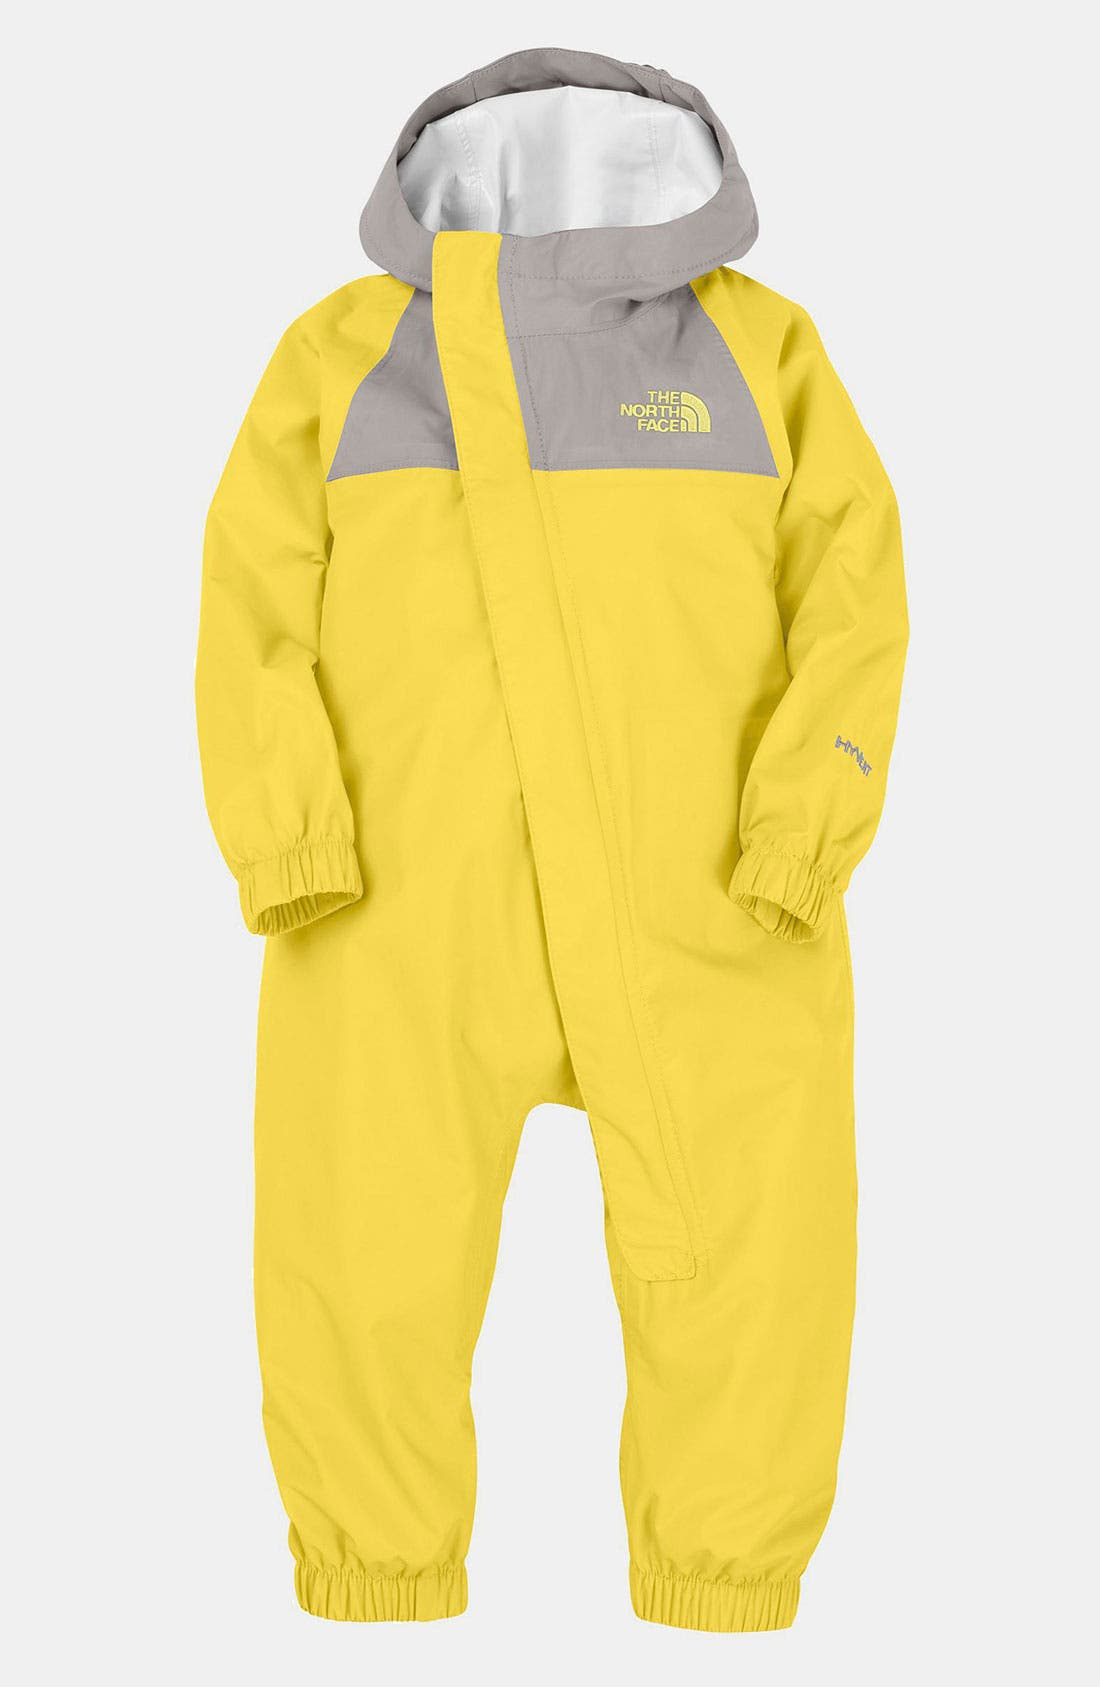 Alternate Image 1 Selected - The North Face 'Resolve' Rain Suit (Baby)